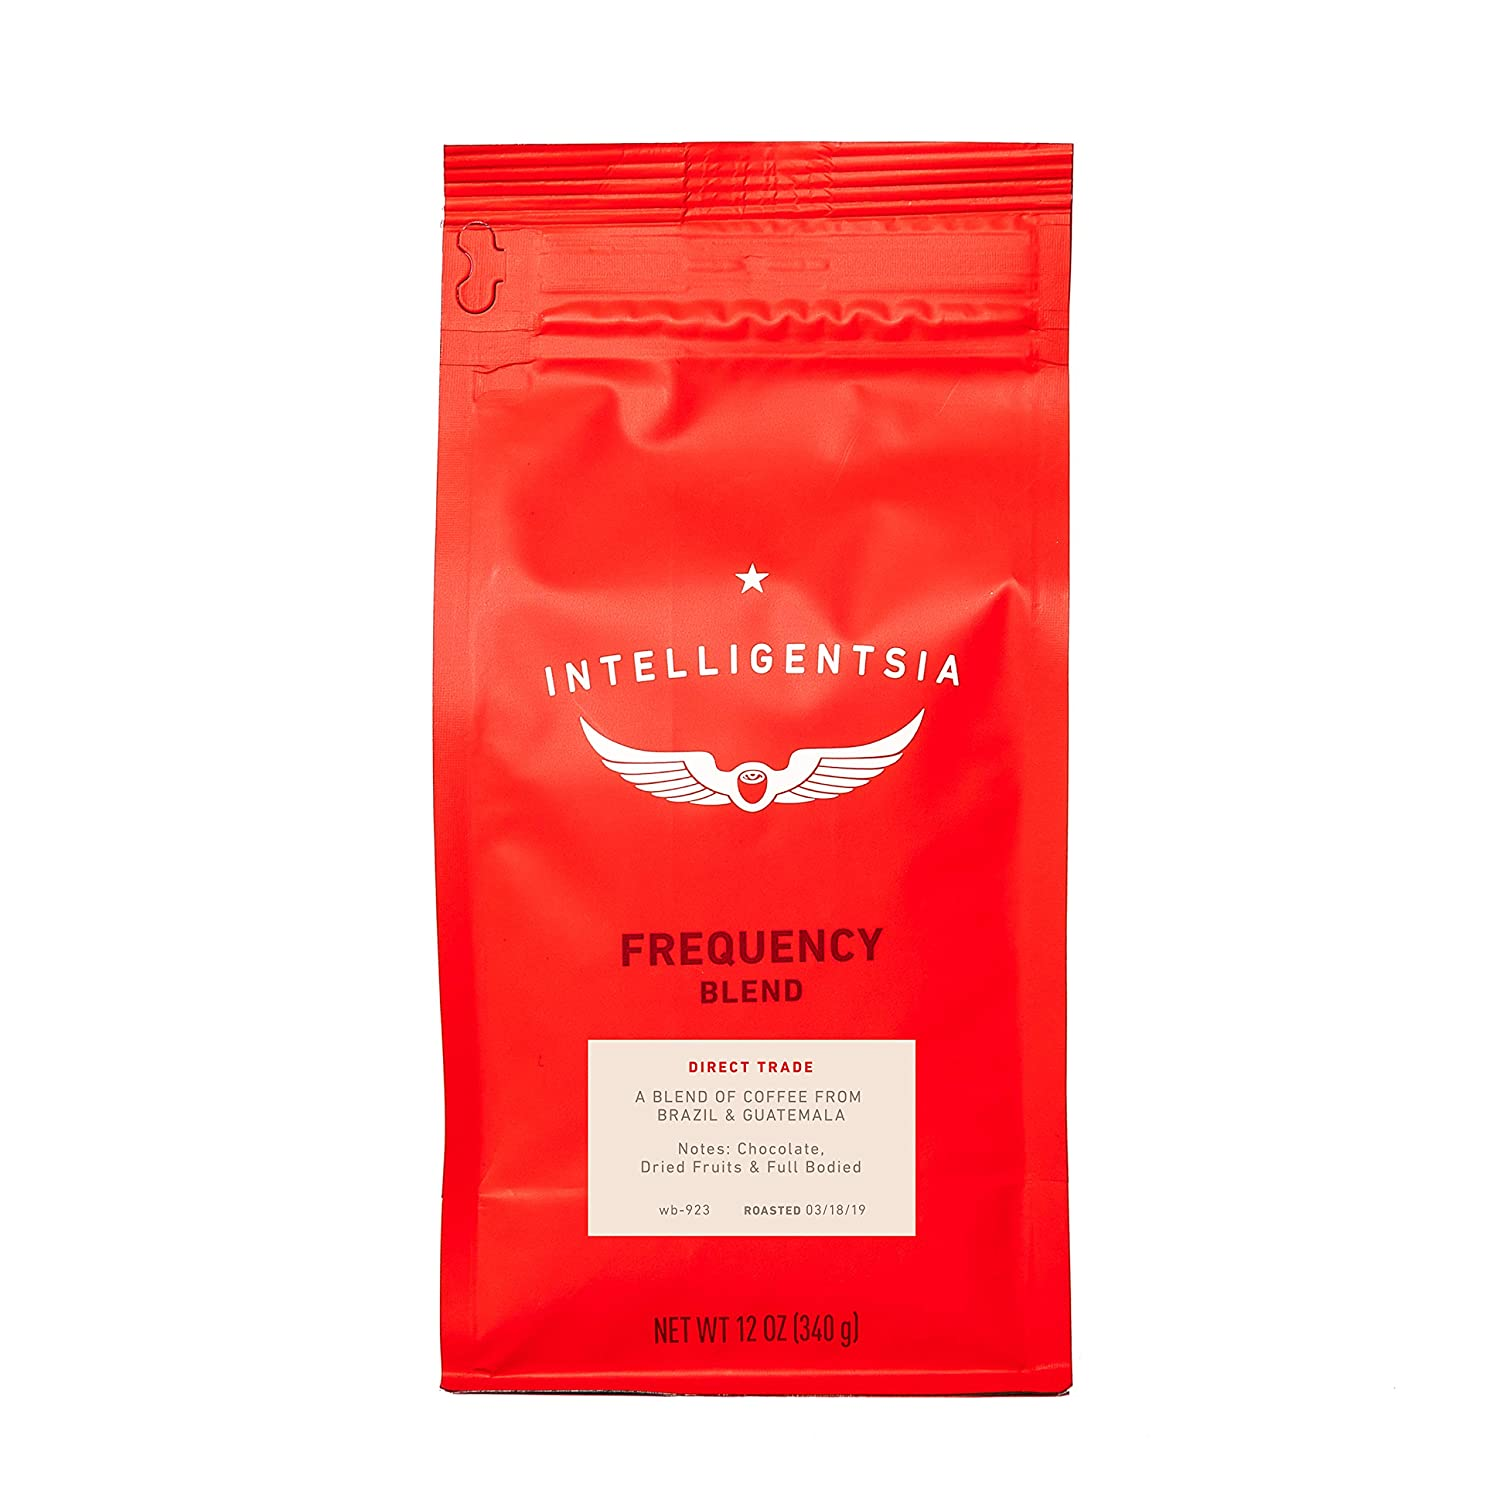 Intelligentsia Frequency Blend - 12 oz - Medium Roast, Direct Trade, Whole Bean Coffee